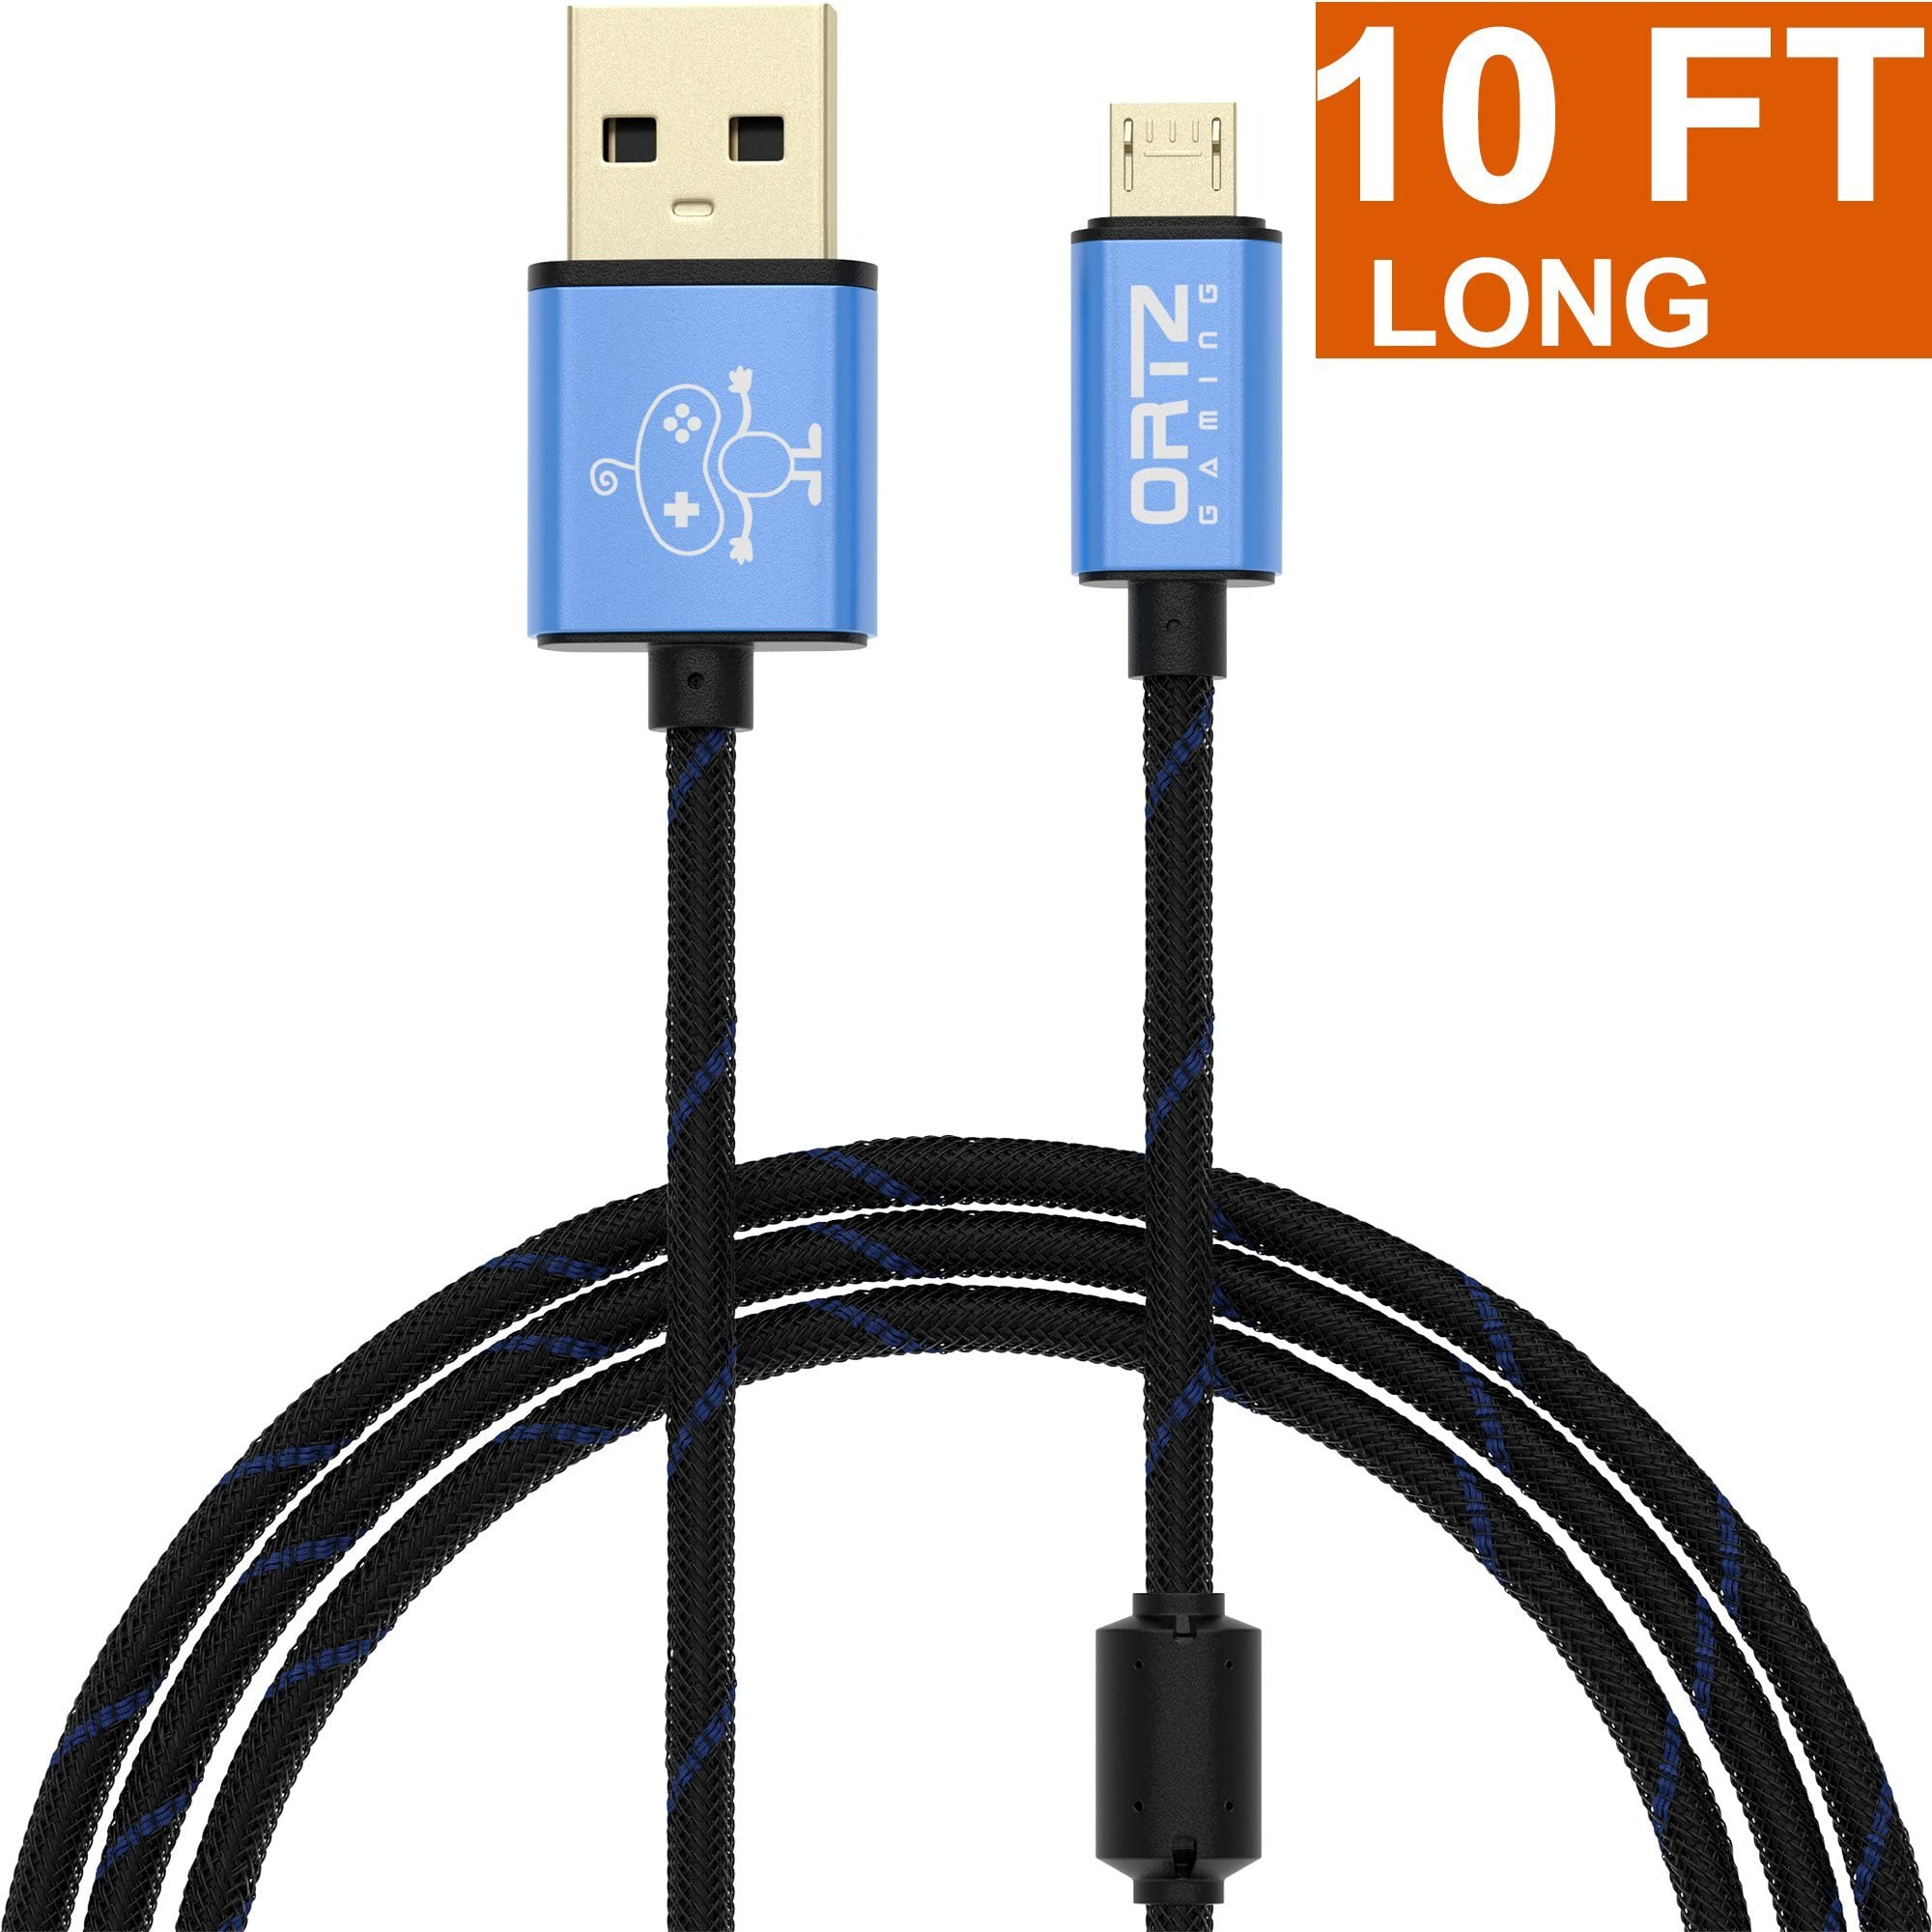 Best Usb Cable For Android Phone: Amazon.com: Ortz 10-Feet Charging Cable [RAPID CHARGE] for PS4 rh:amazon.com,Design